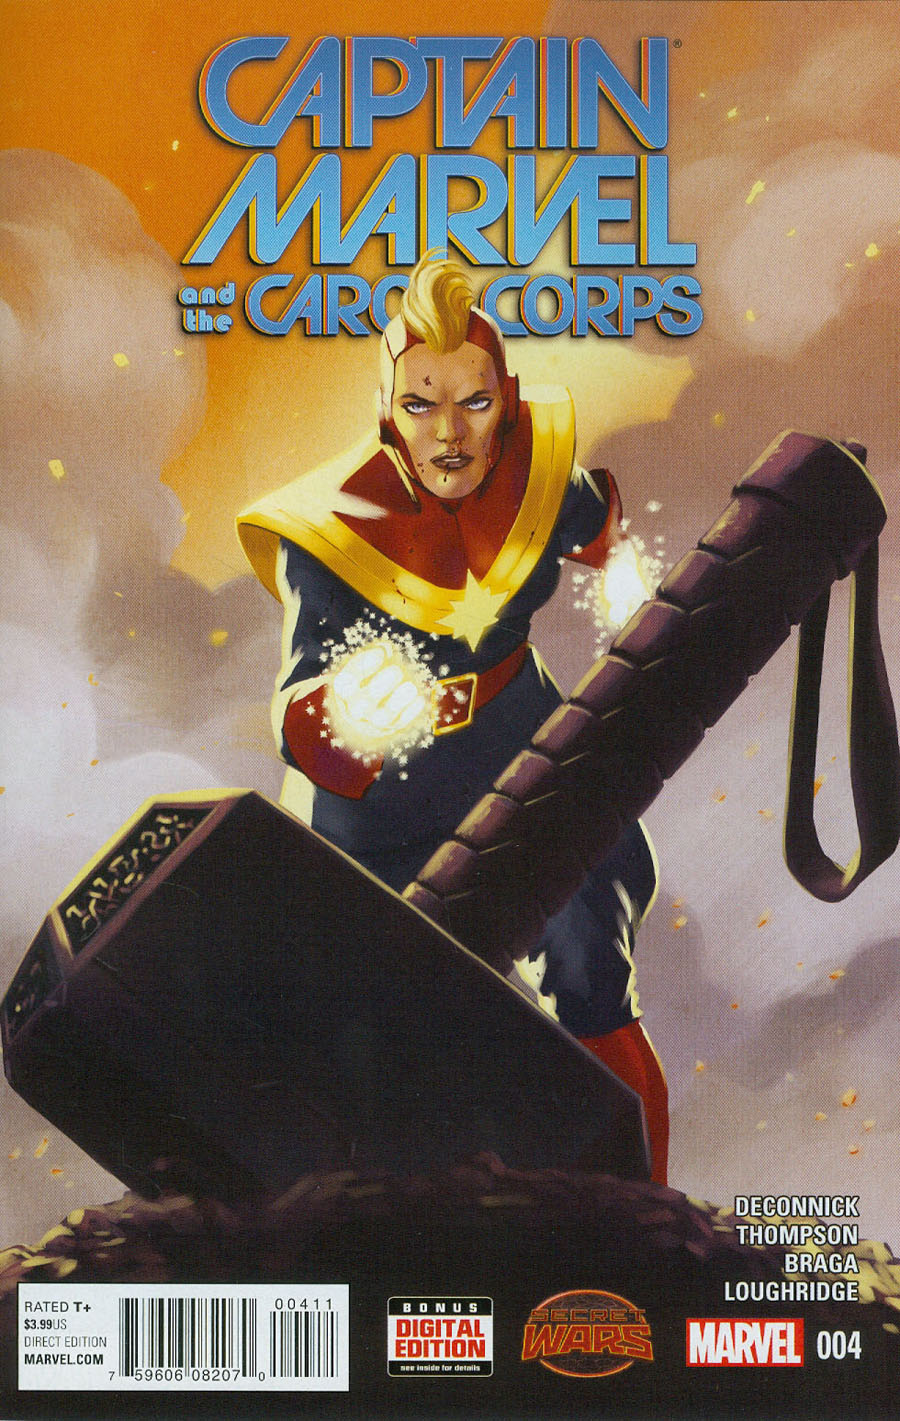 Captain Marvel And The Carol Corps #4 (Secret Wars Warzones Tie-In)